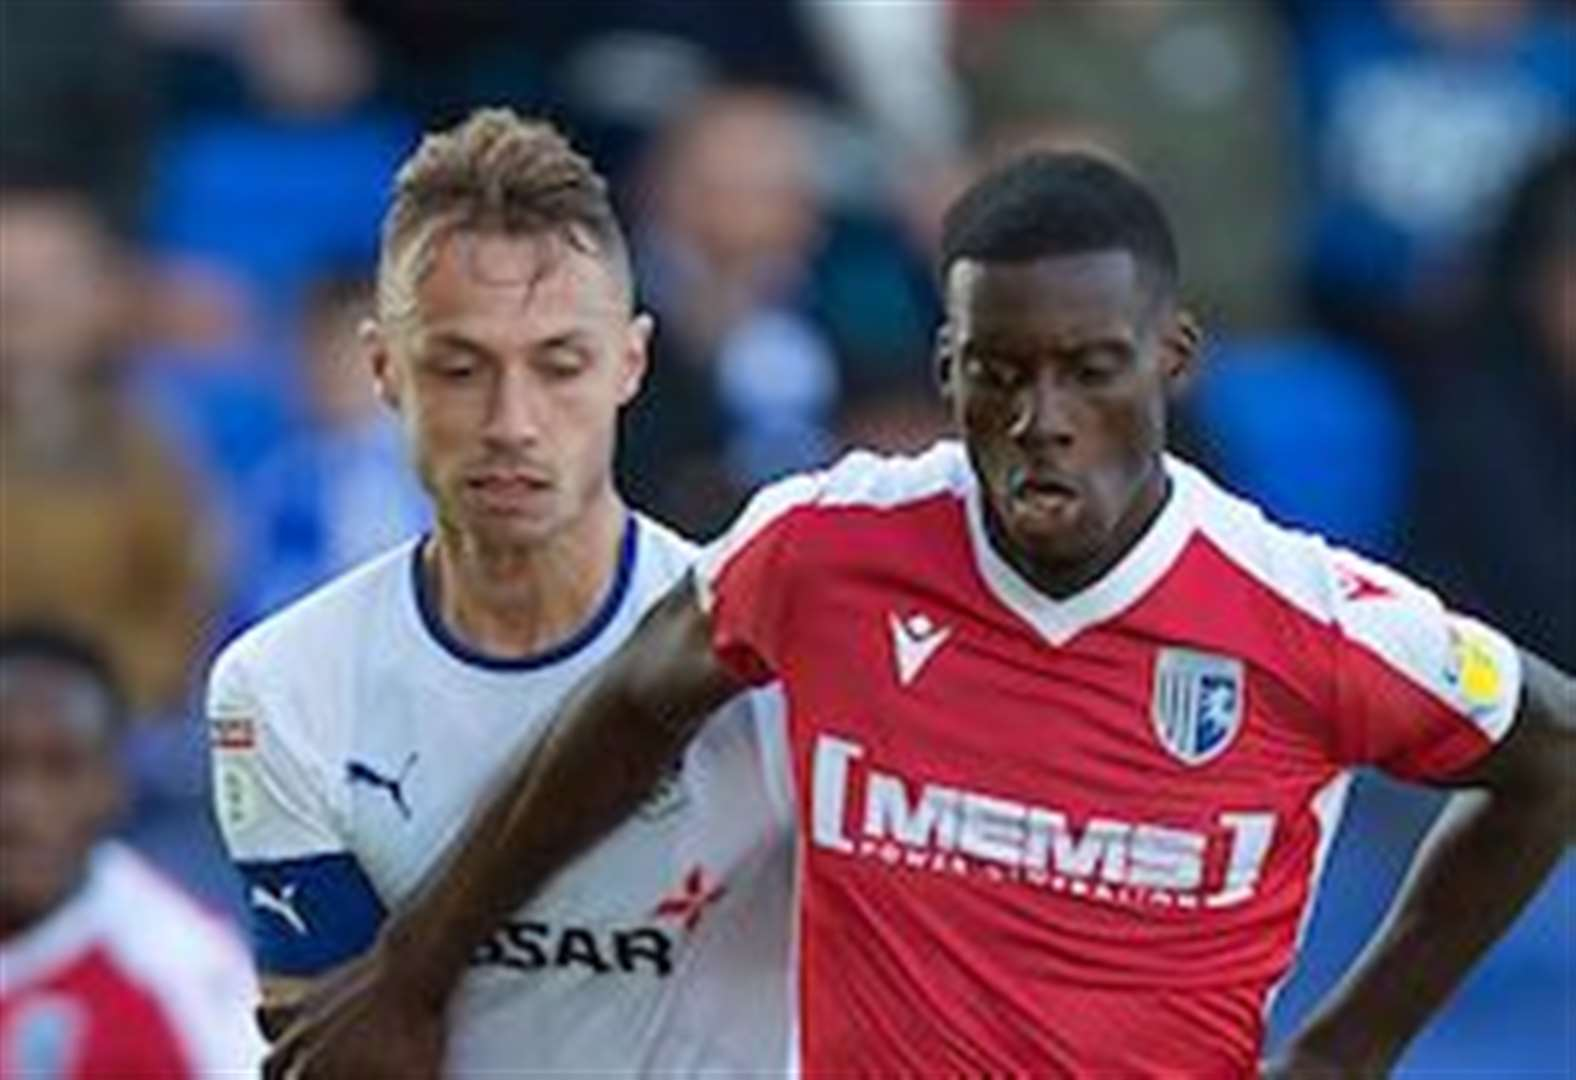 Report: Gills blow it